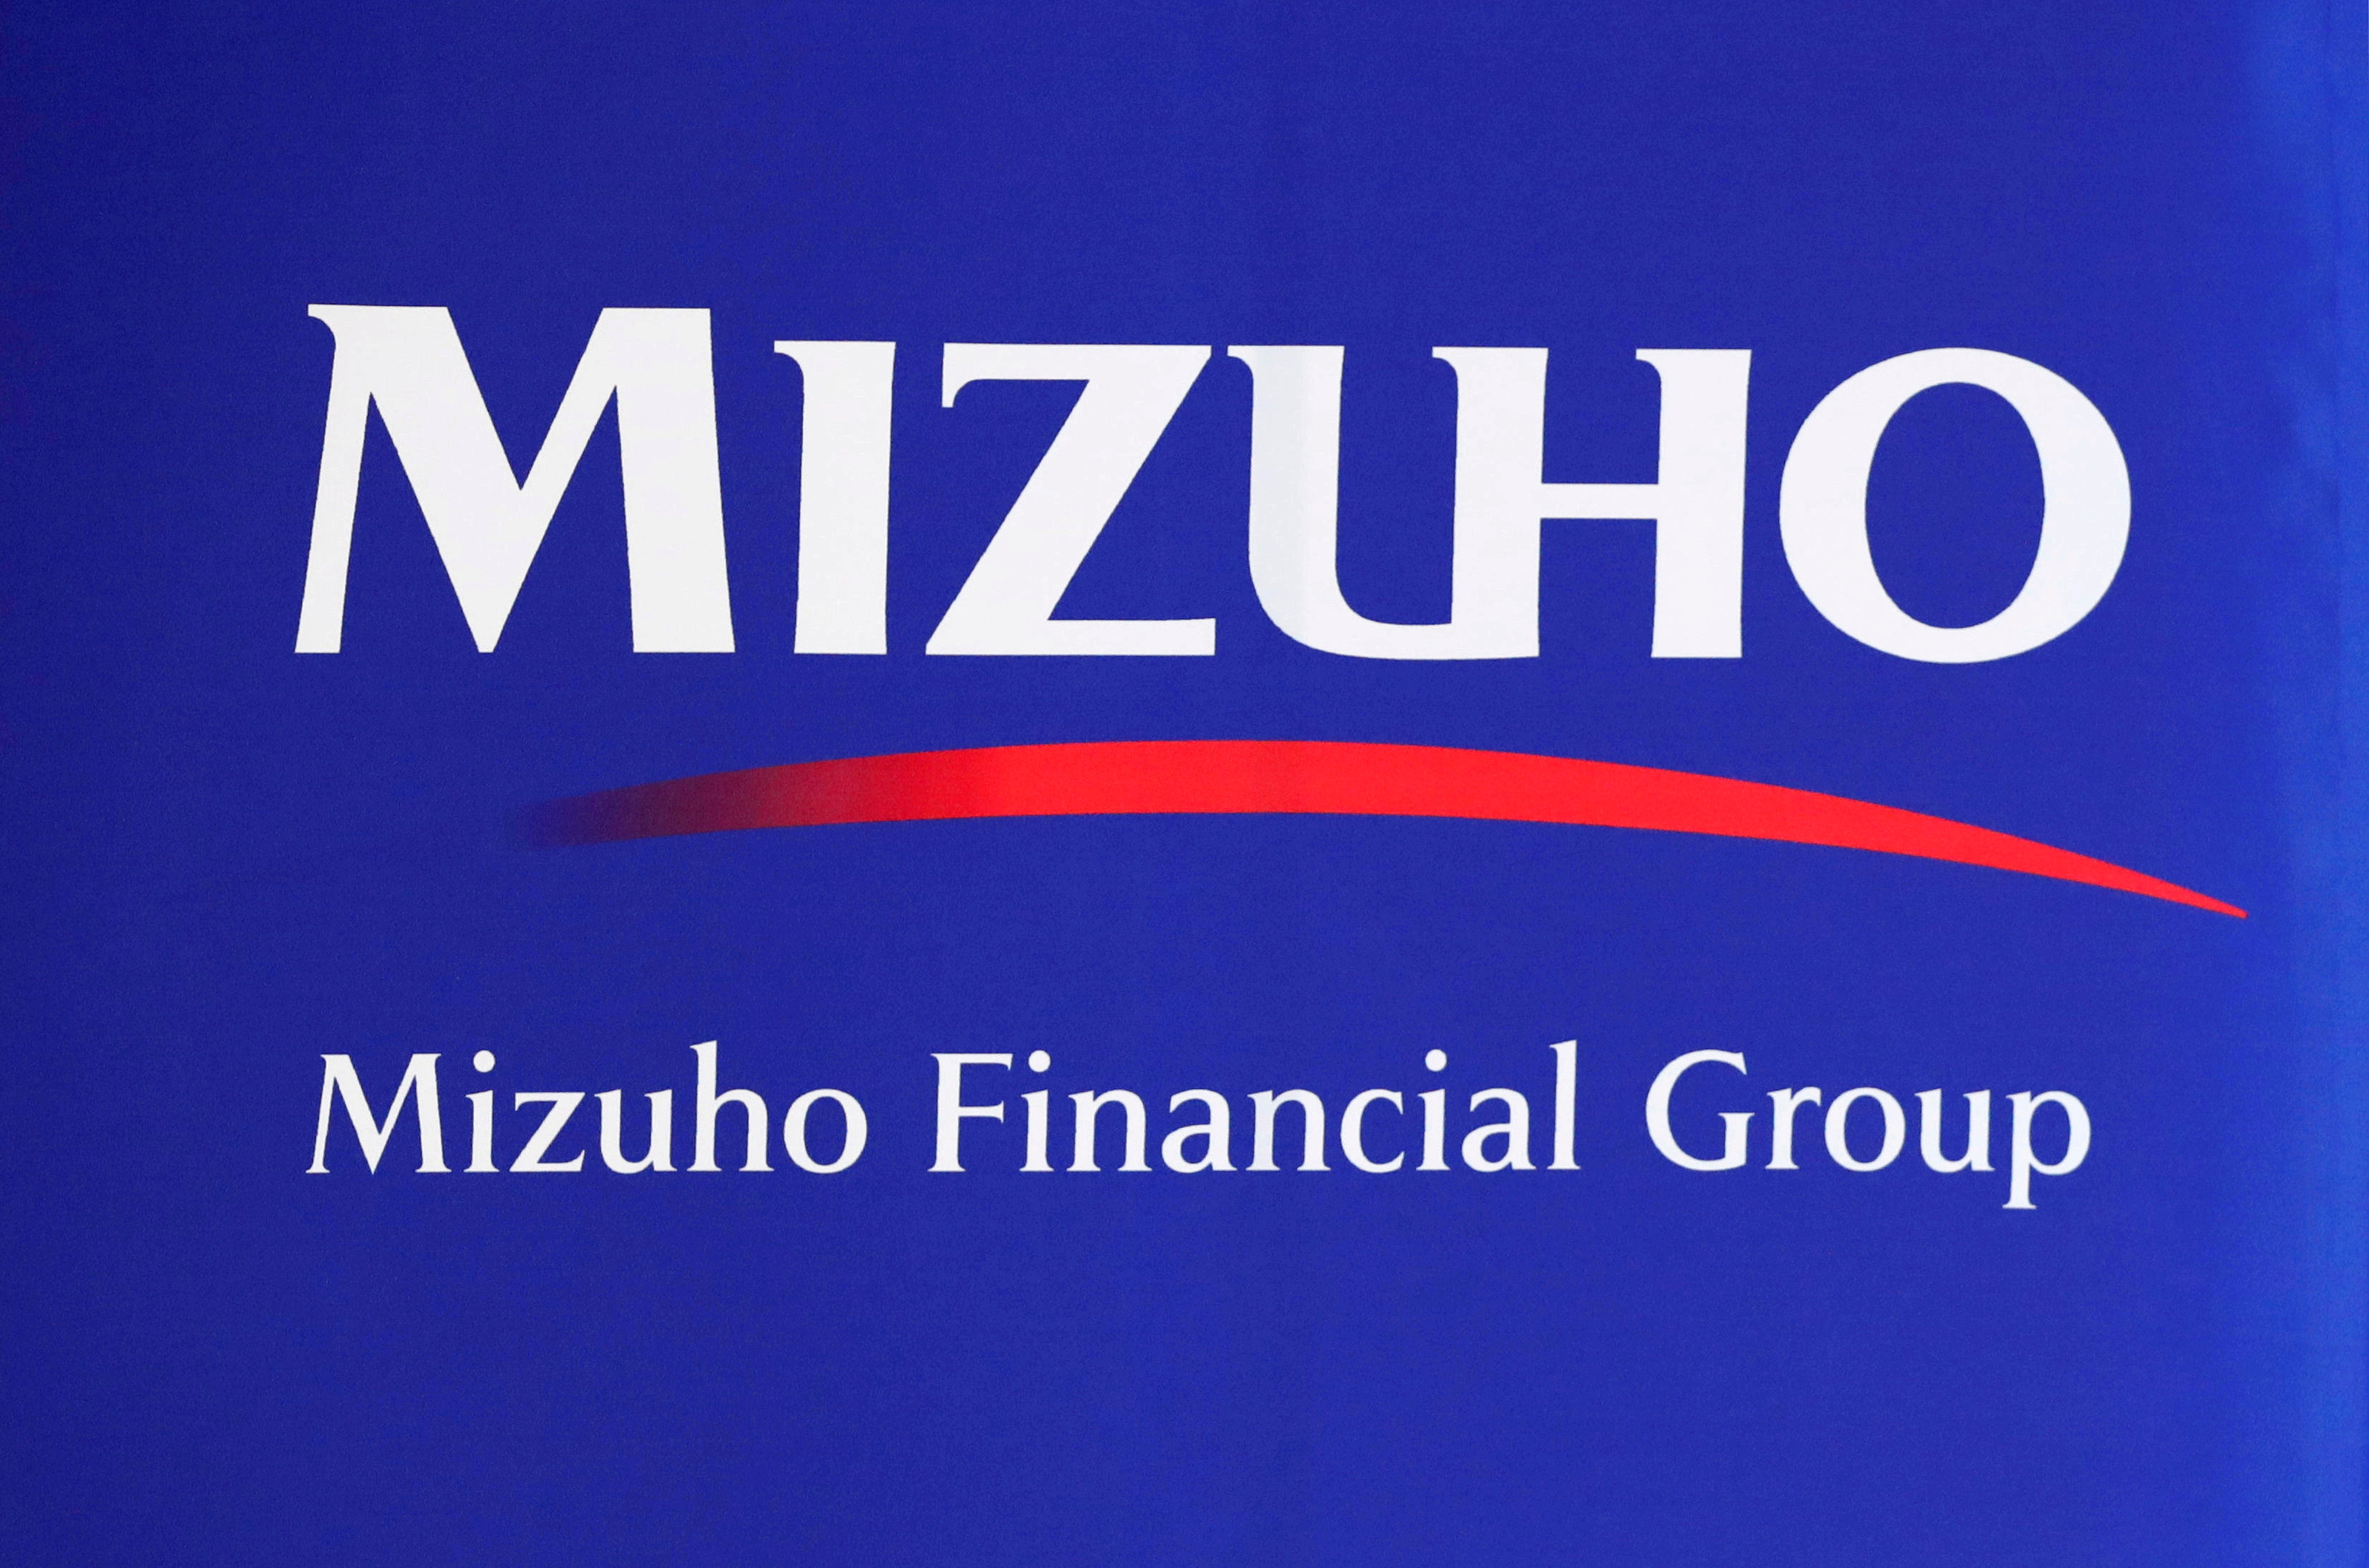 Mizuho Financial Group logo is seen at the company's headquarters in Tokyo, Japan August 20, 2018.  REUTERS/Toru Hanai